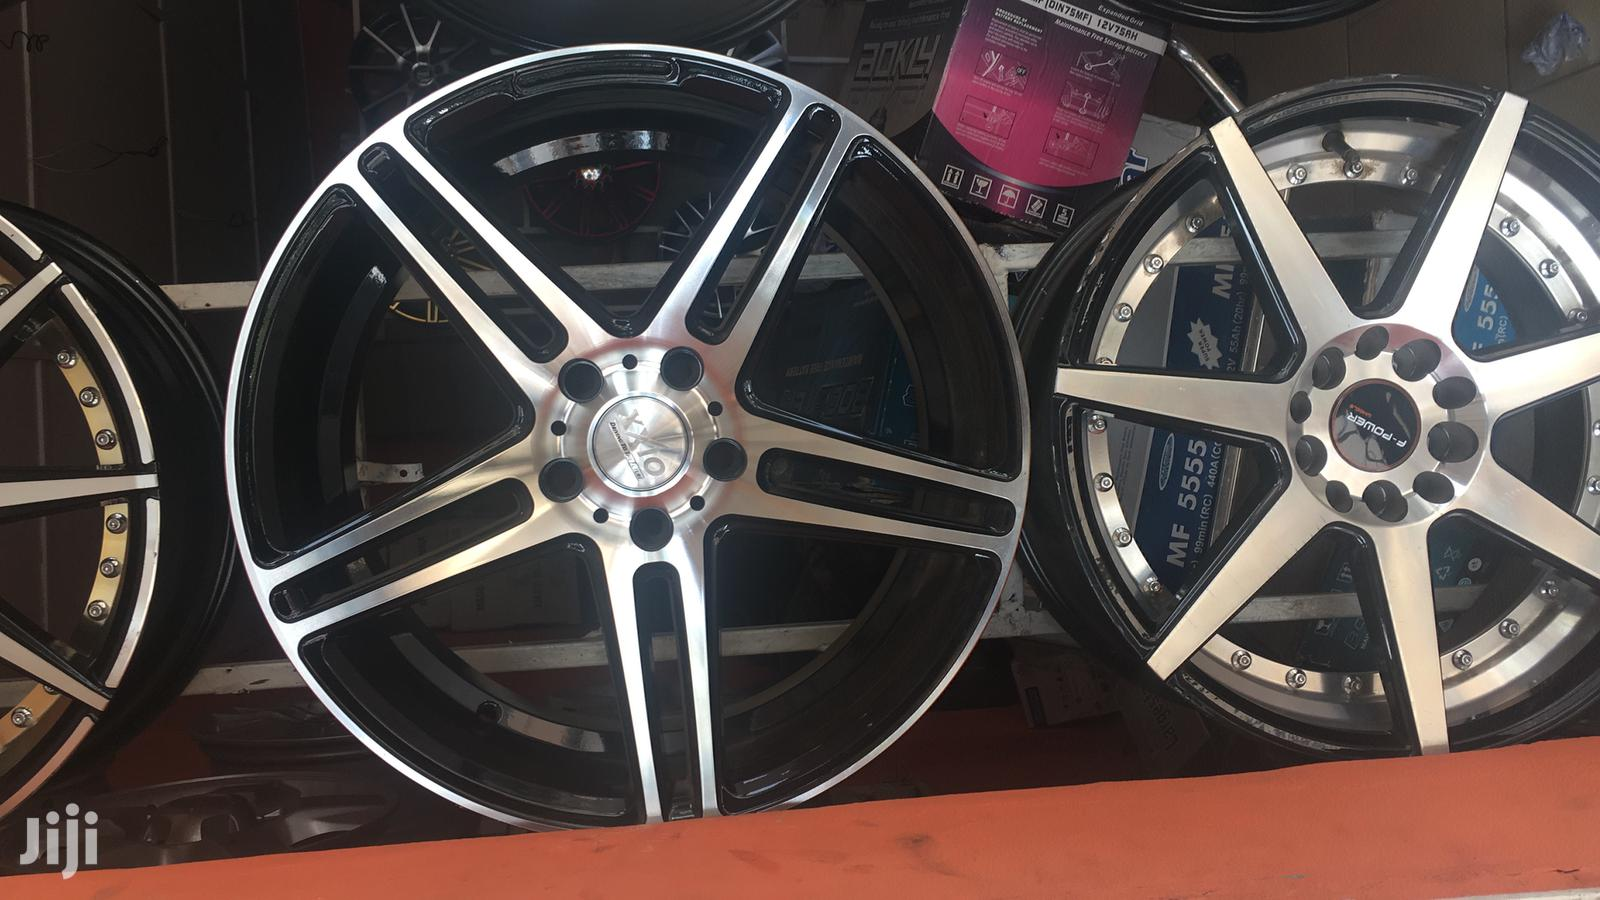 Sale of Brand New Rim 18 for Benz Camry Etc